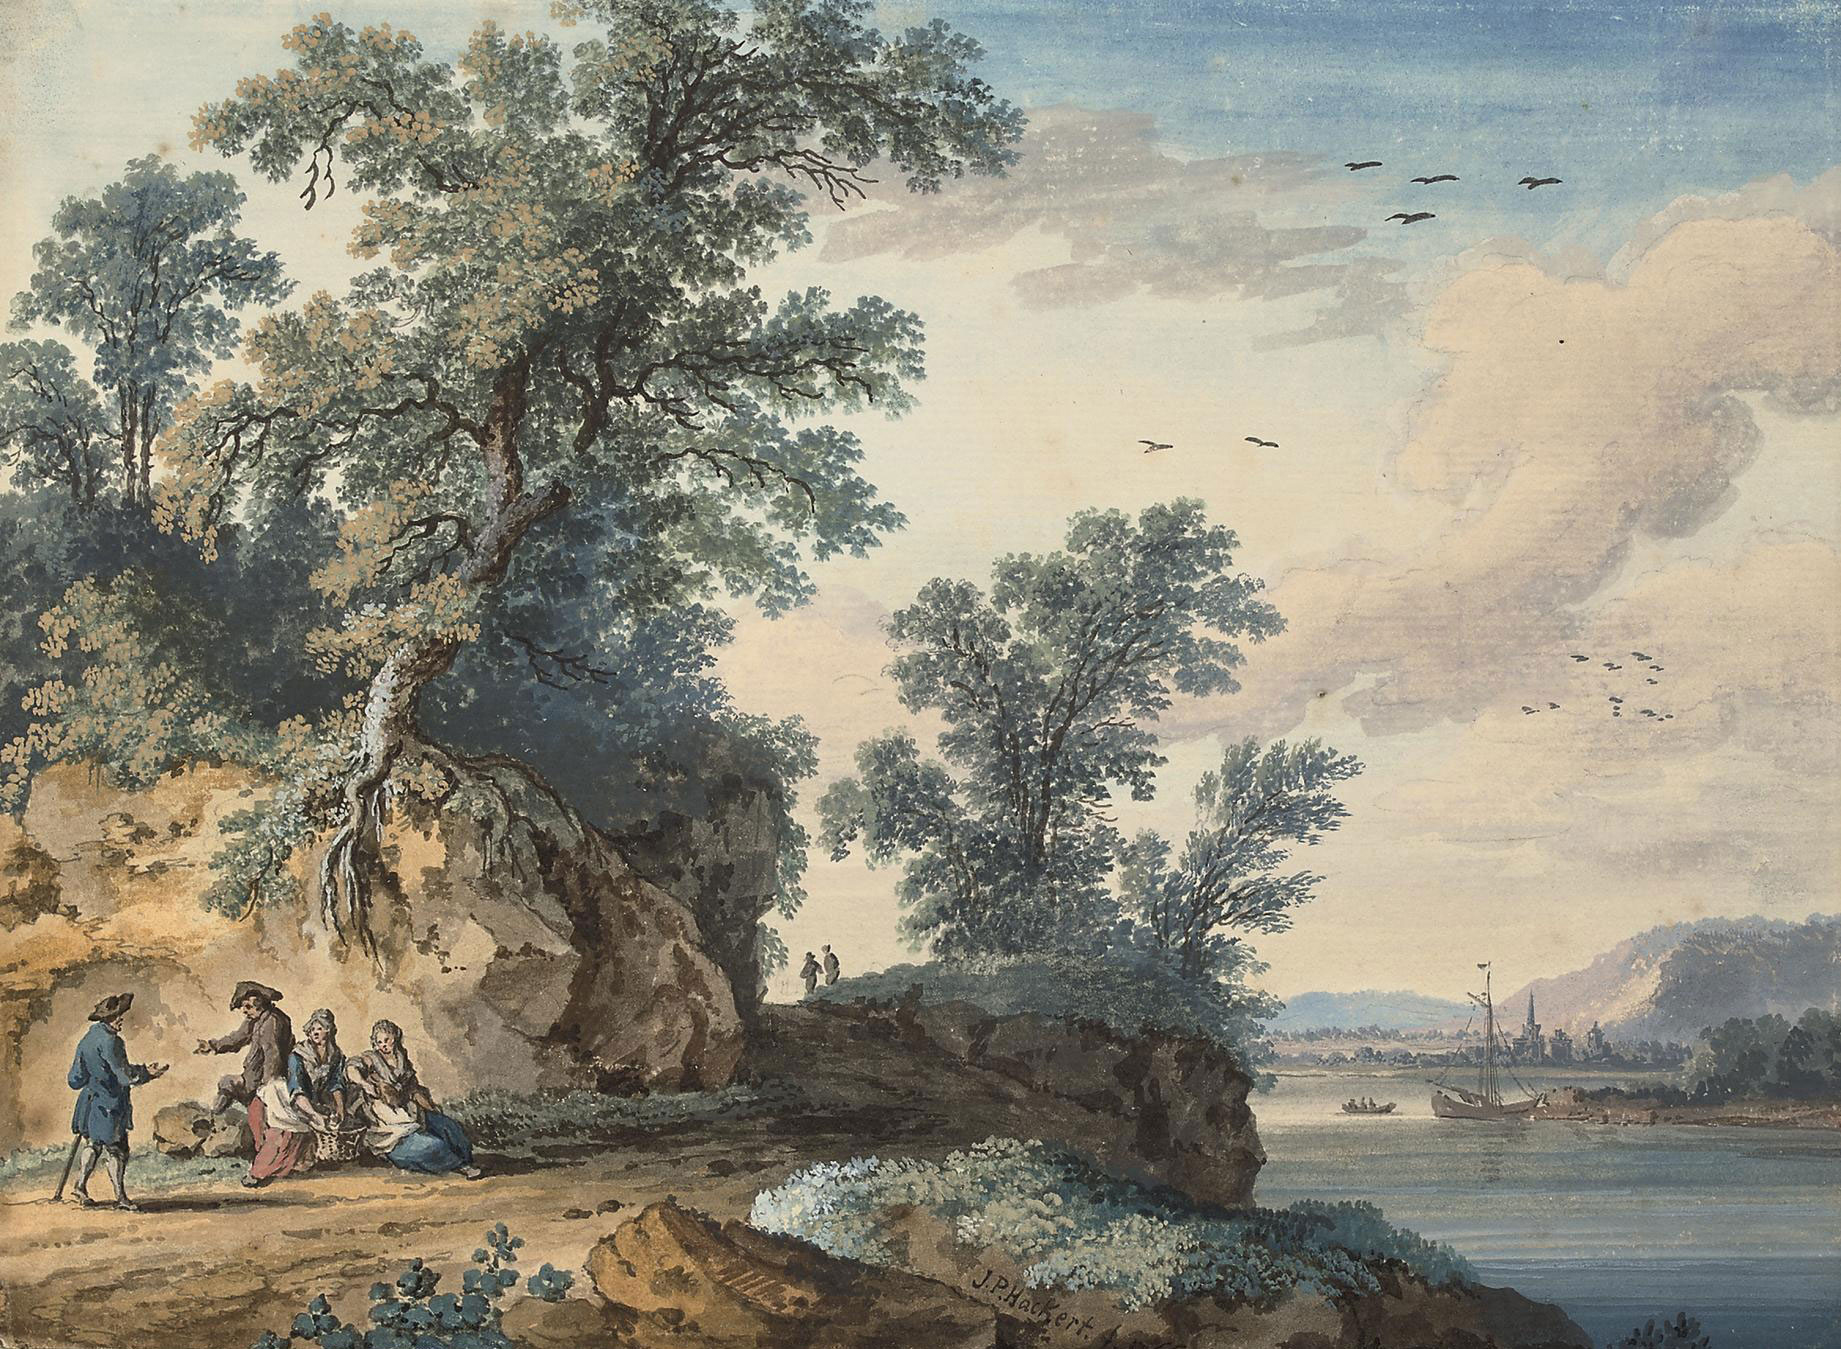 Travellers resting beside a river, with a town, possibly Rouen, beyond